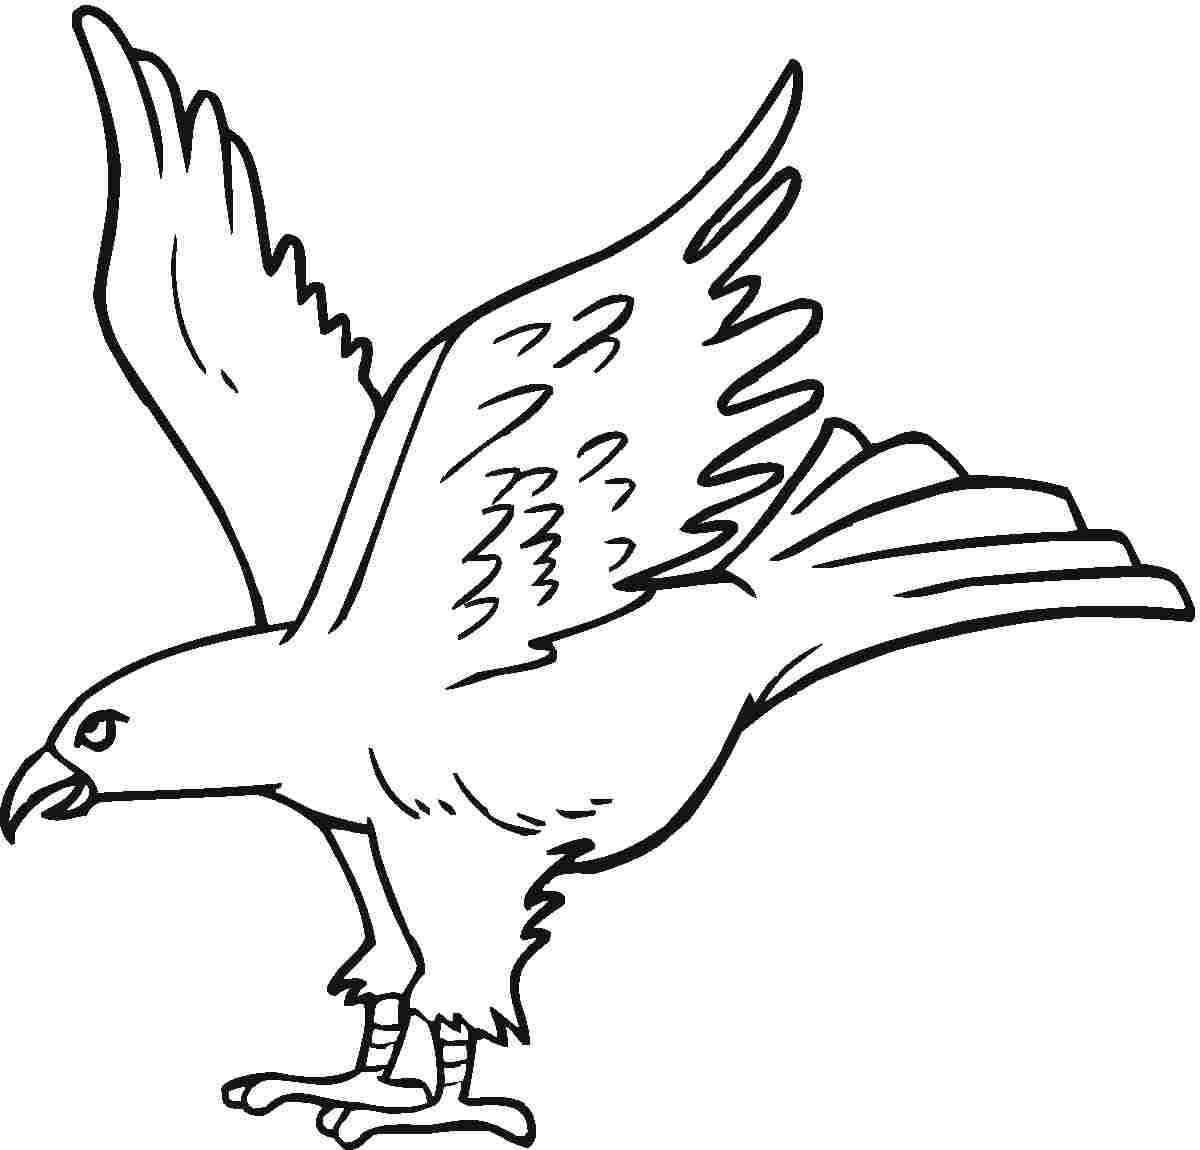 free printable pictures of eagles eagle coloring pages kidsuki printable eagles of free pictures